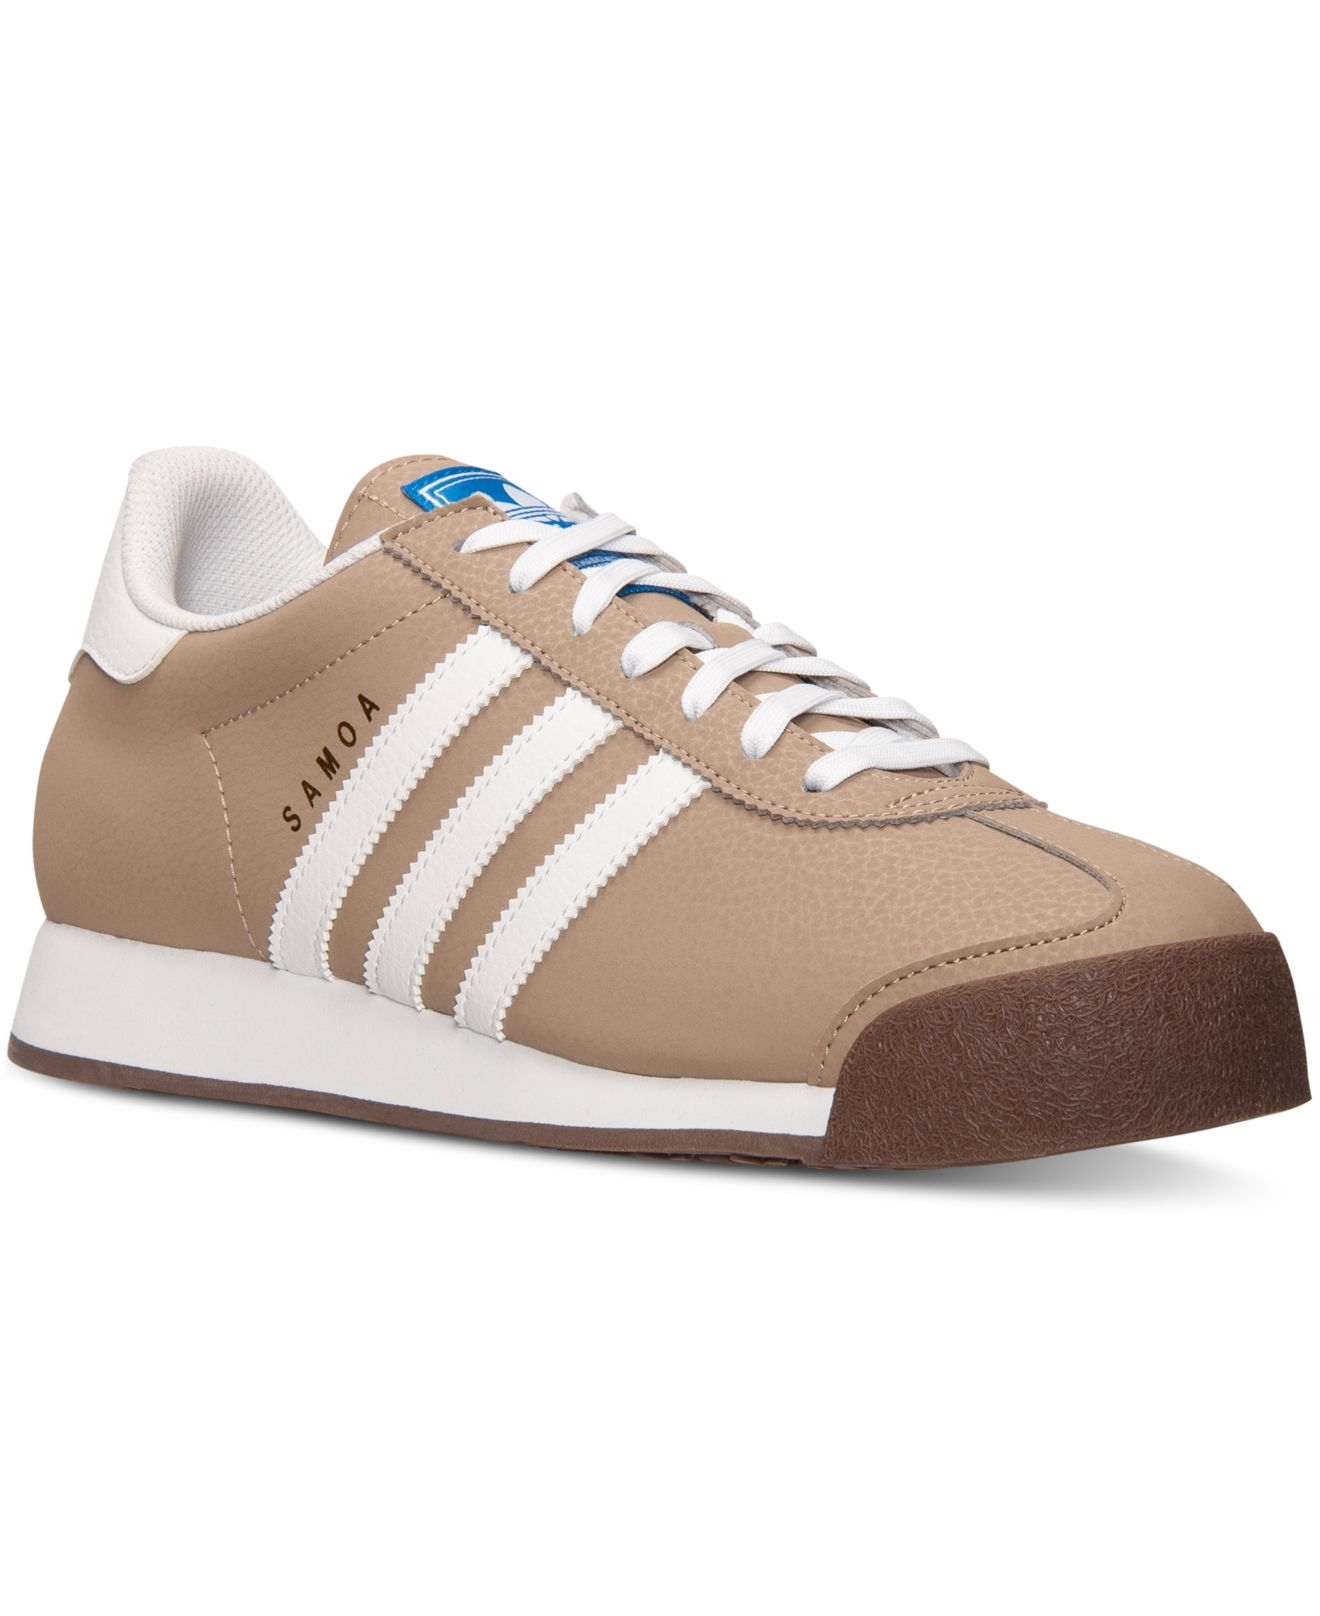 online store 87967 936a1 Lyst - adidas Men s Samoa Casual Sneakers From Finish Line in White ...